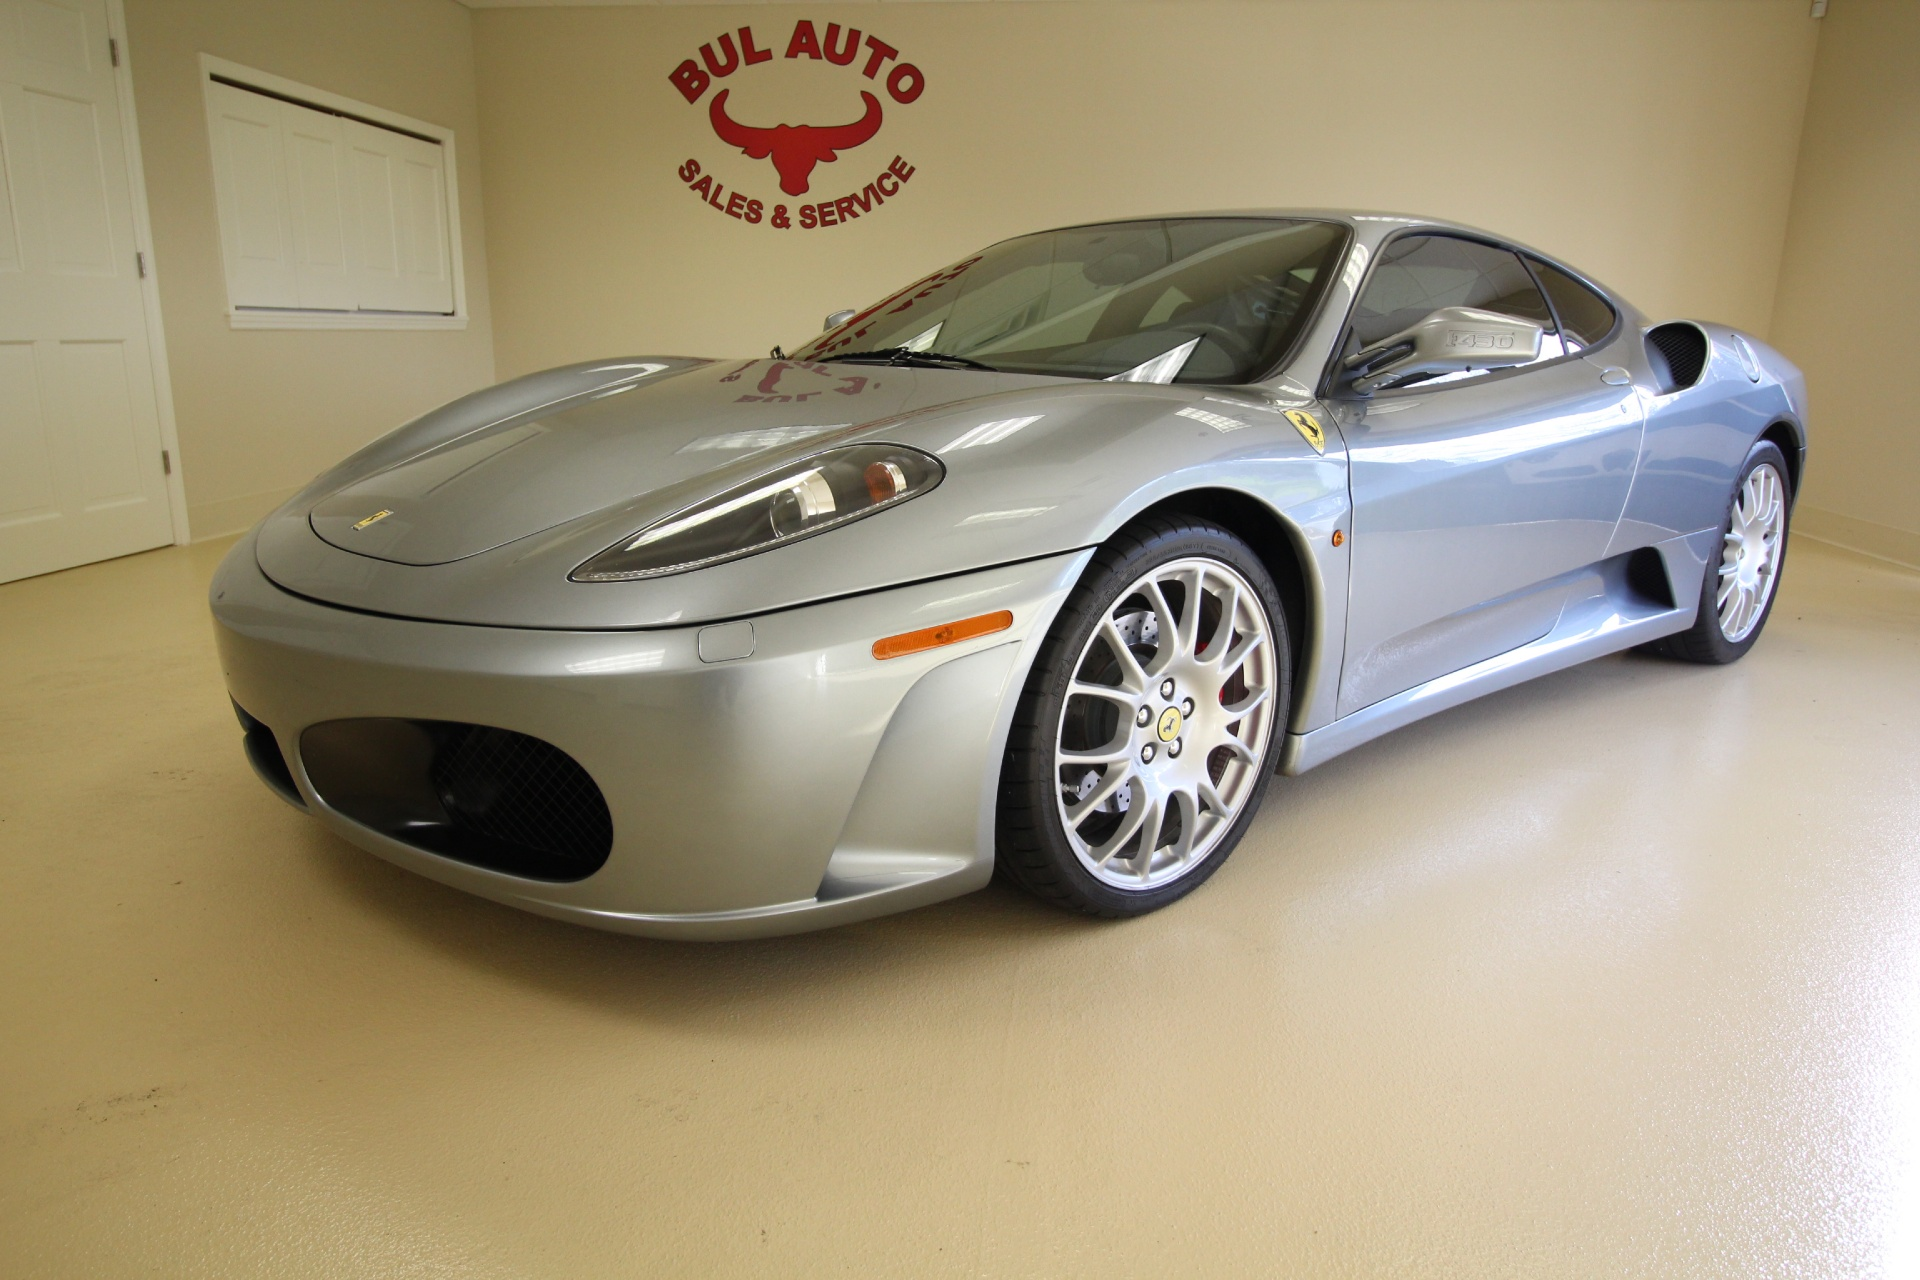 2005 Ferrari F430 COUPE,SUPERB CONDITION,SHIELDS,RED CALIPERS ...